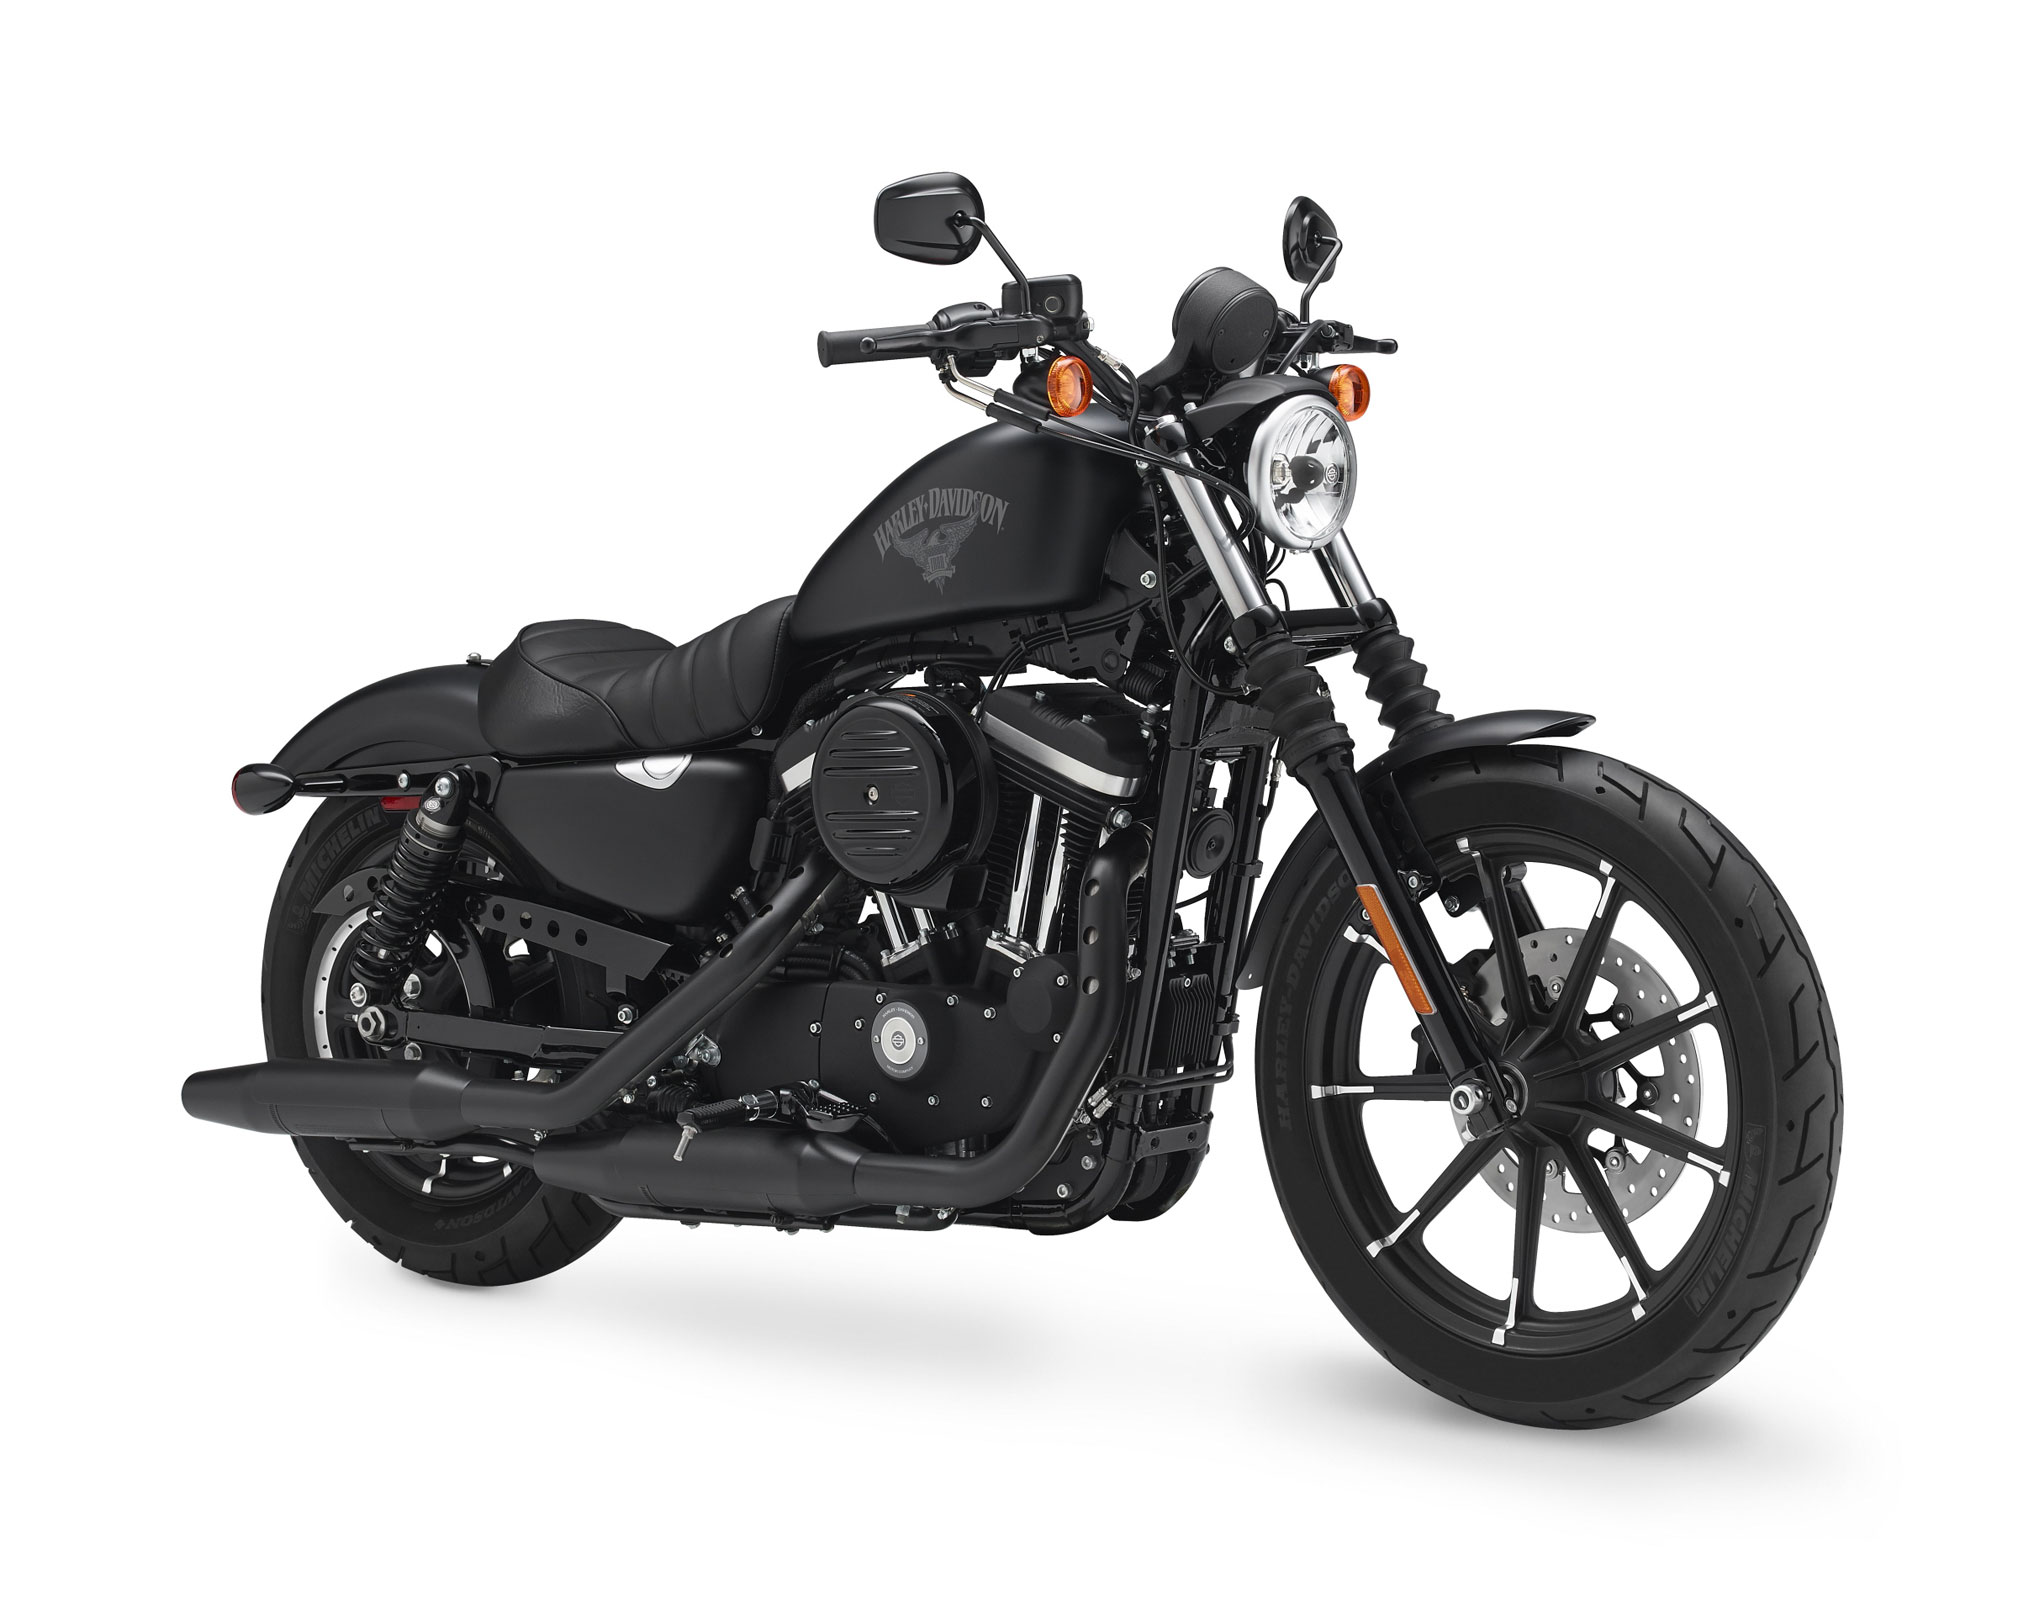 2018 Harley Davidson Iron 883 Review Totalmotorcycle